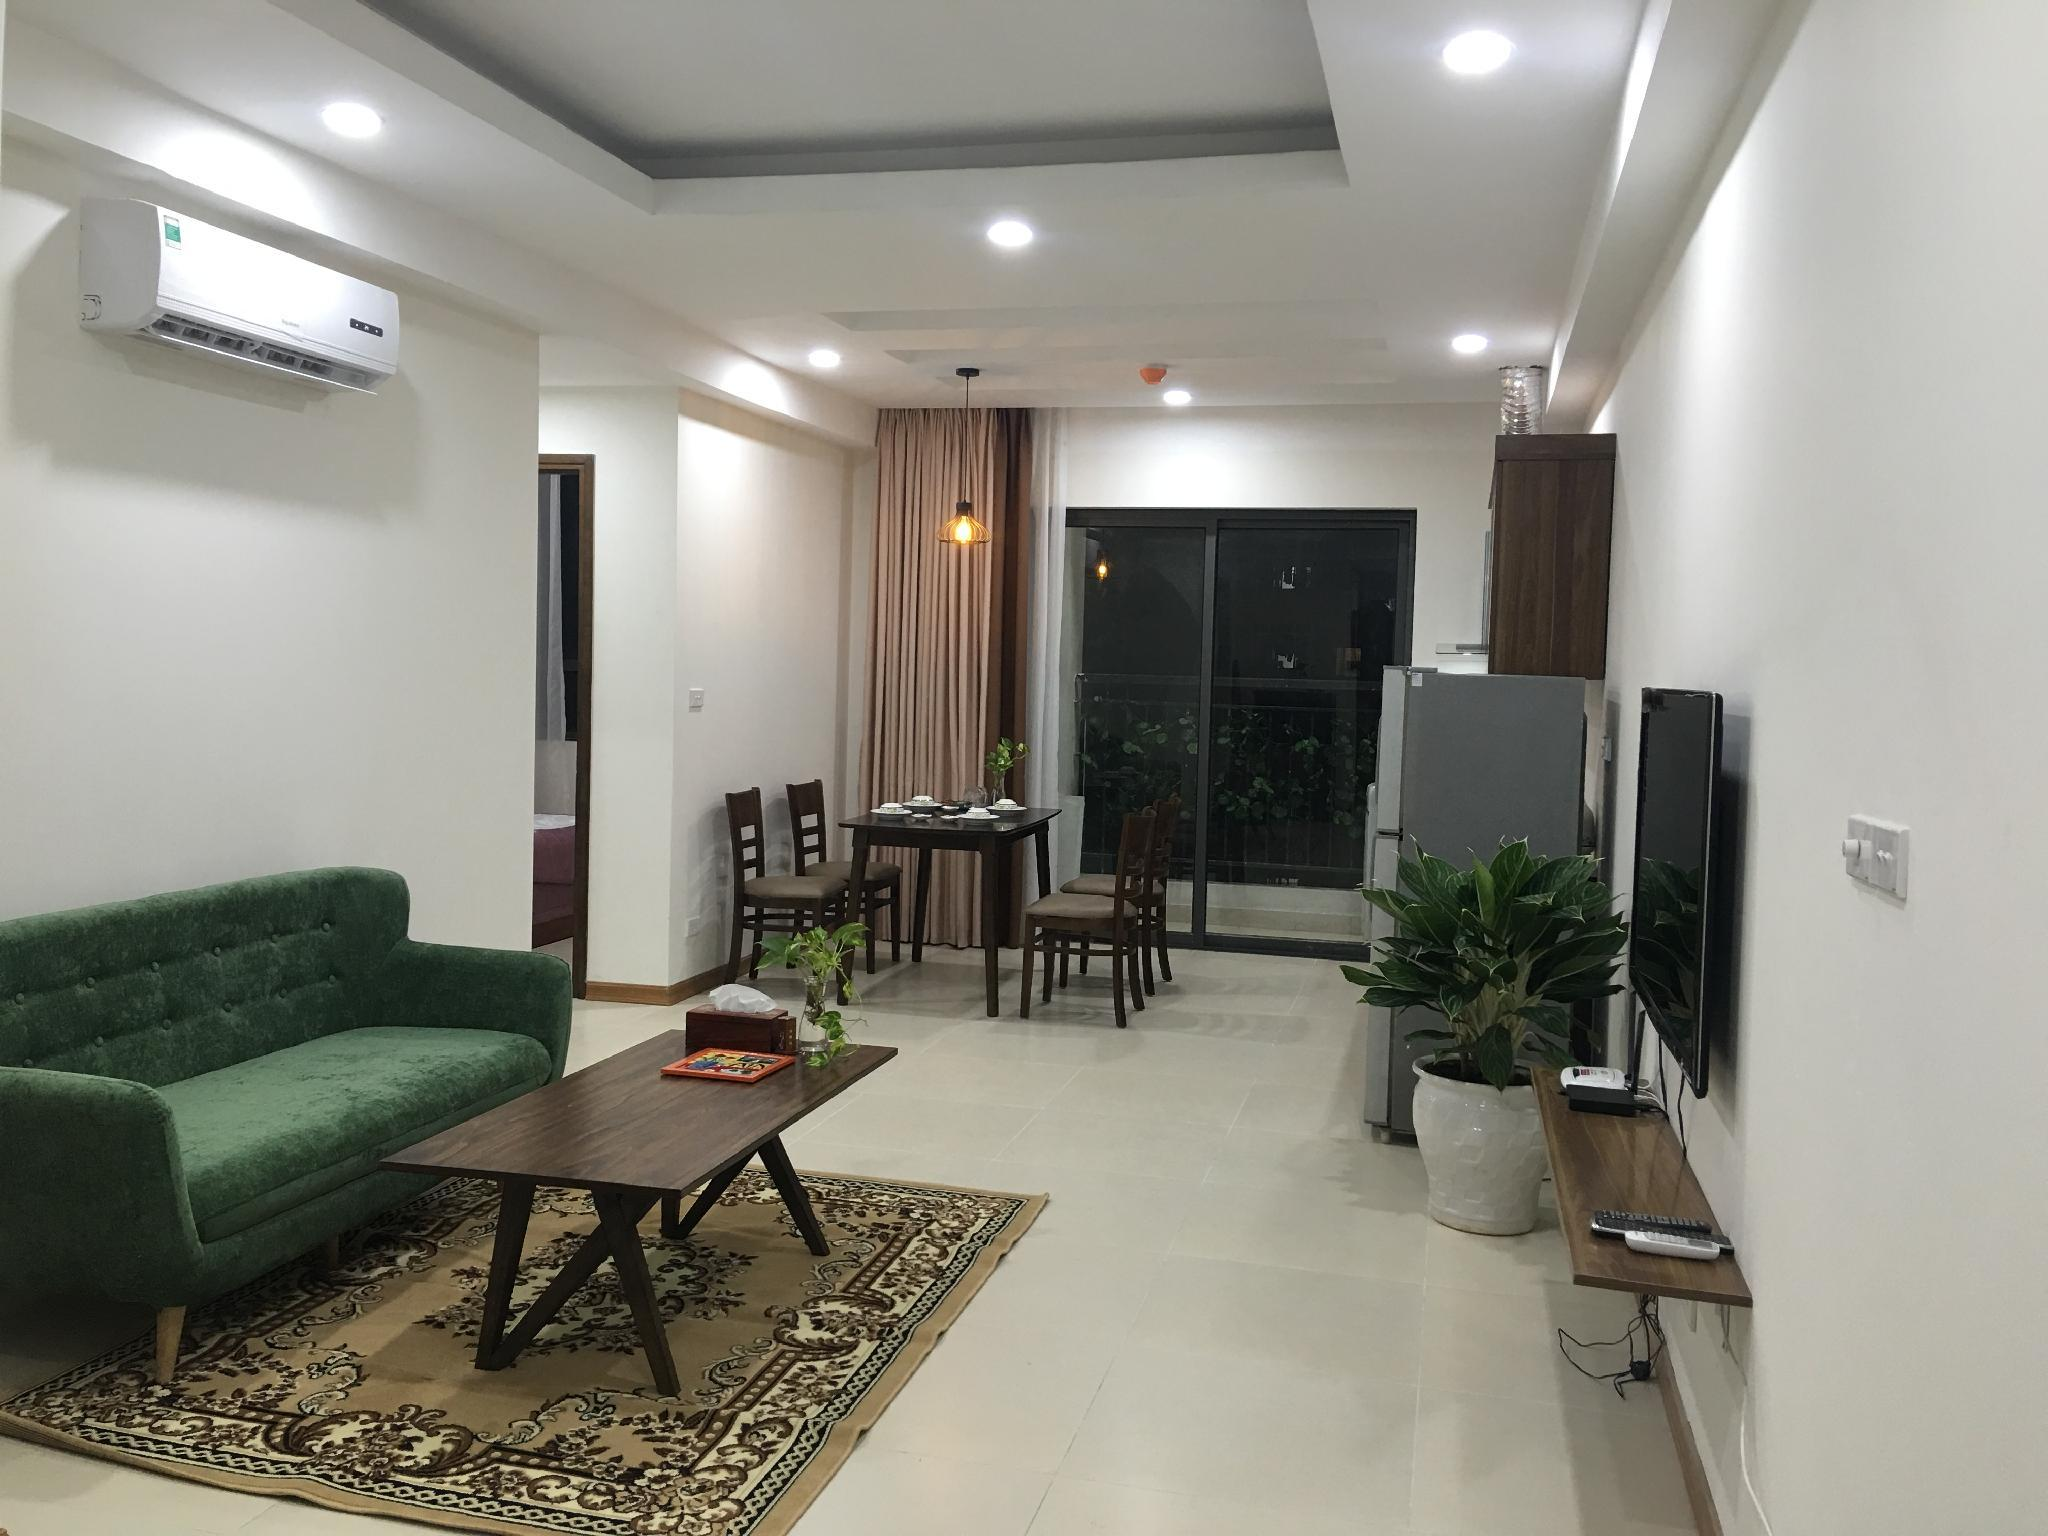 2bedrooms+2baths New ApartmentFree Taxi To Airport